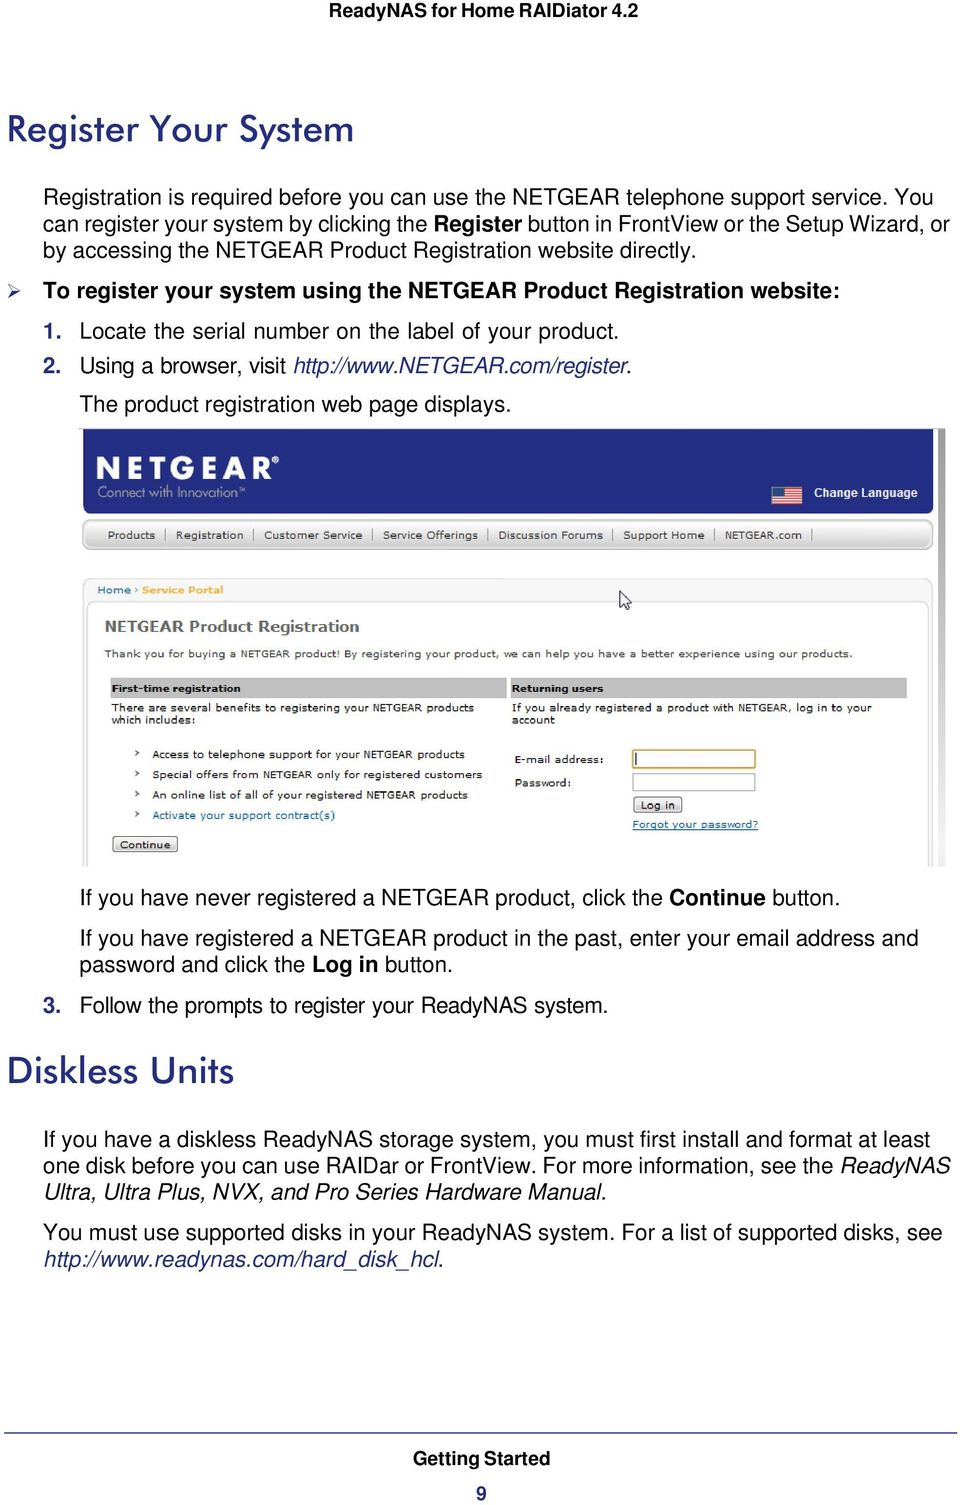 To register your system using the NETGEAR Product Registration website: 1. Locate the serial number on the label of your product. 2. Using a browser, visit http://www.netgear.com/register.